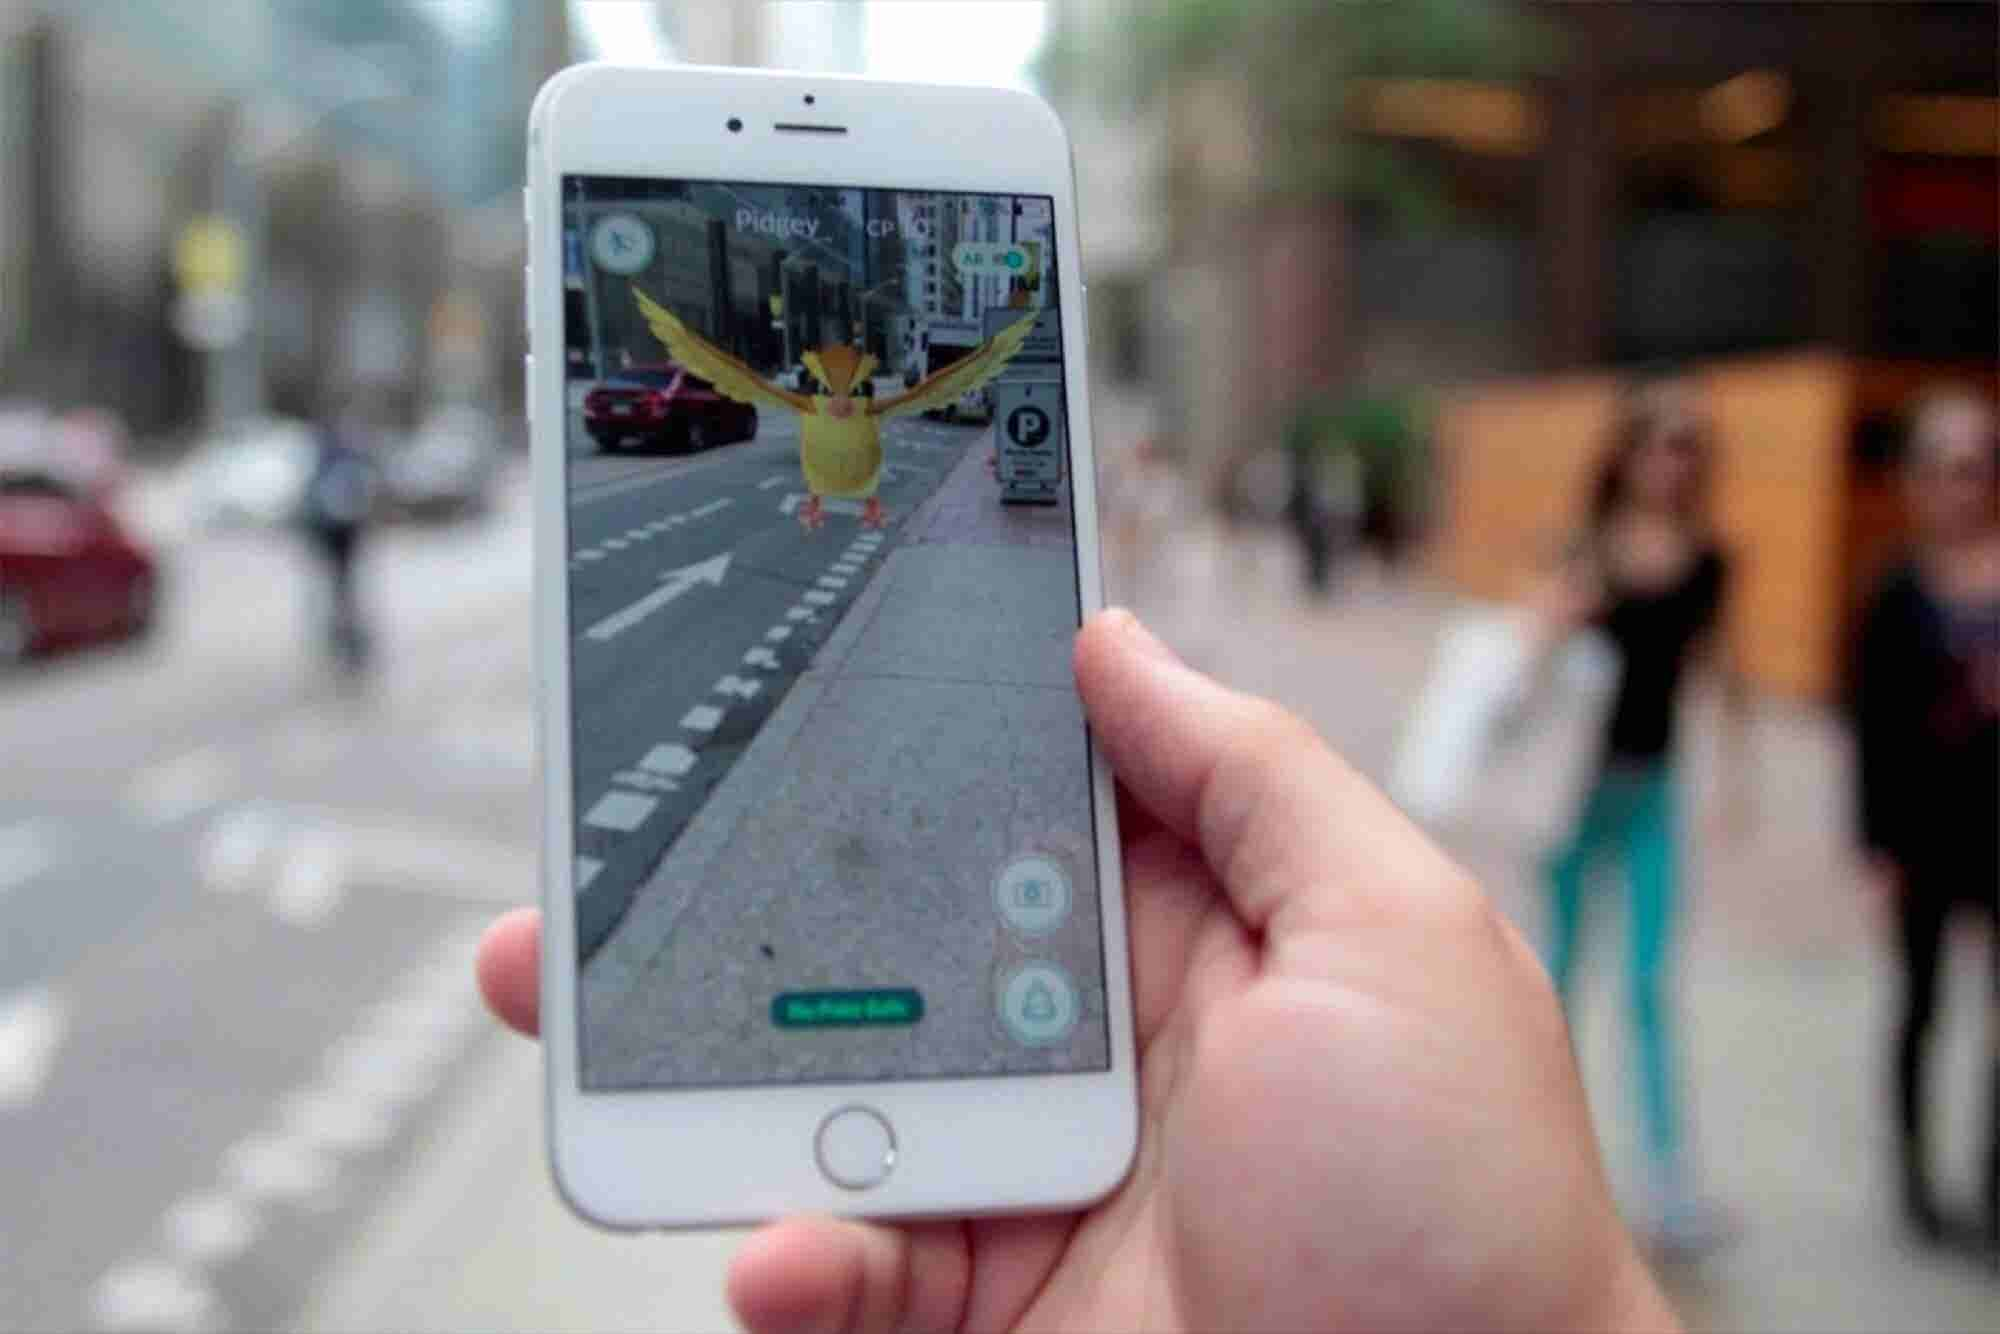 Nintendo Shares are Getting Destroyed as the Pokémon Go Effect Wears Off